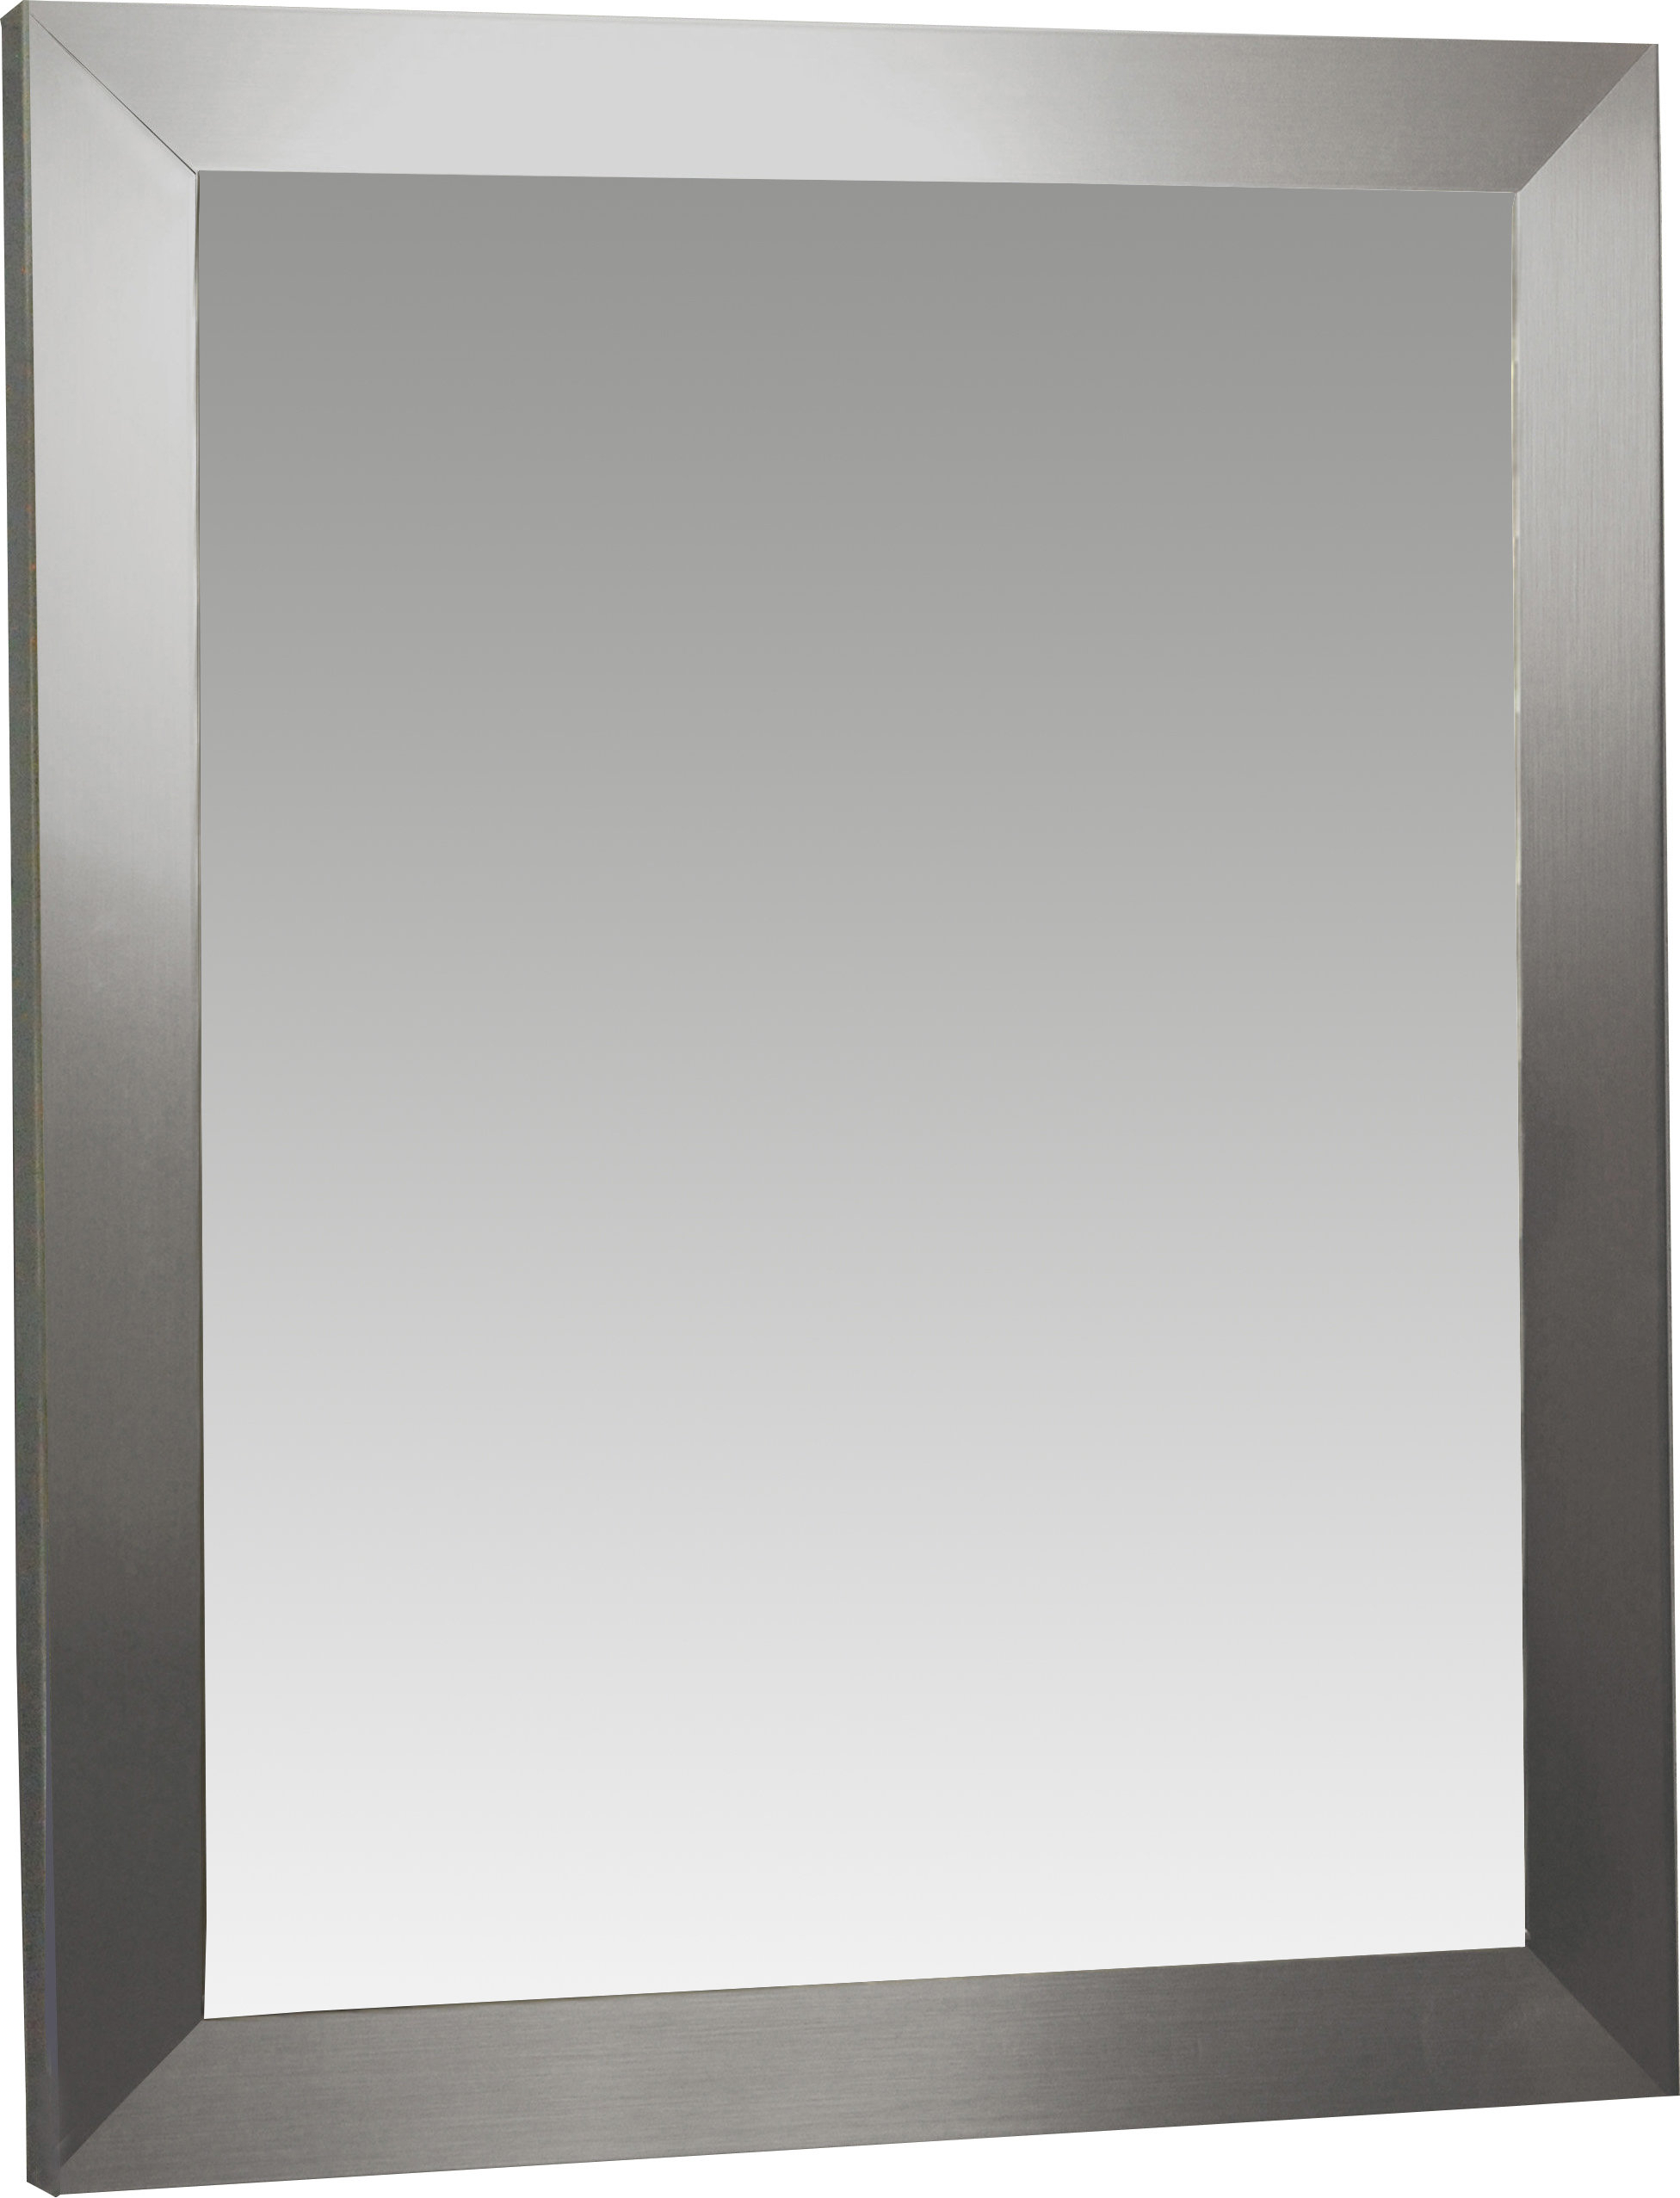 Modern & Contemporary Modern Wall Mirror | Allmodern inside Colton Modern & Contemporary Wall Mirrors (Image 26 of 30)